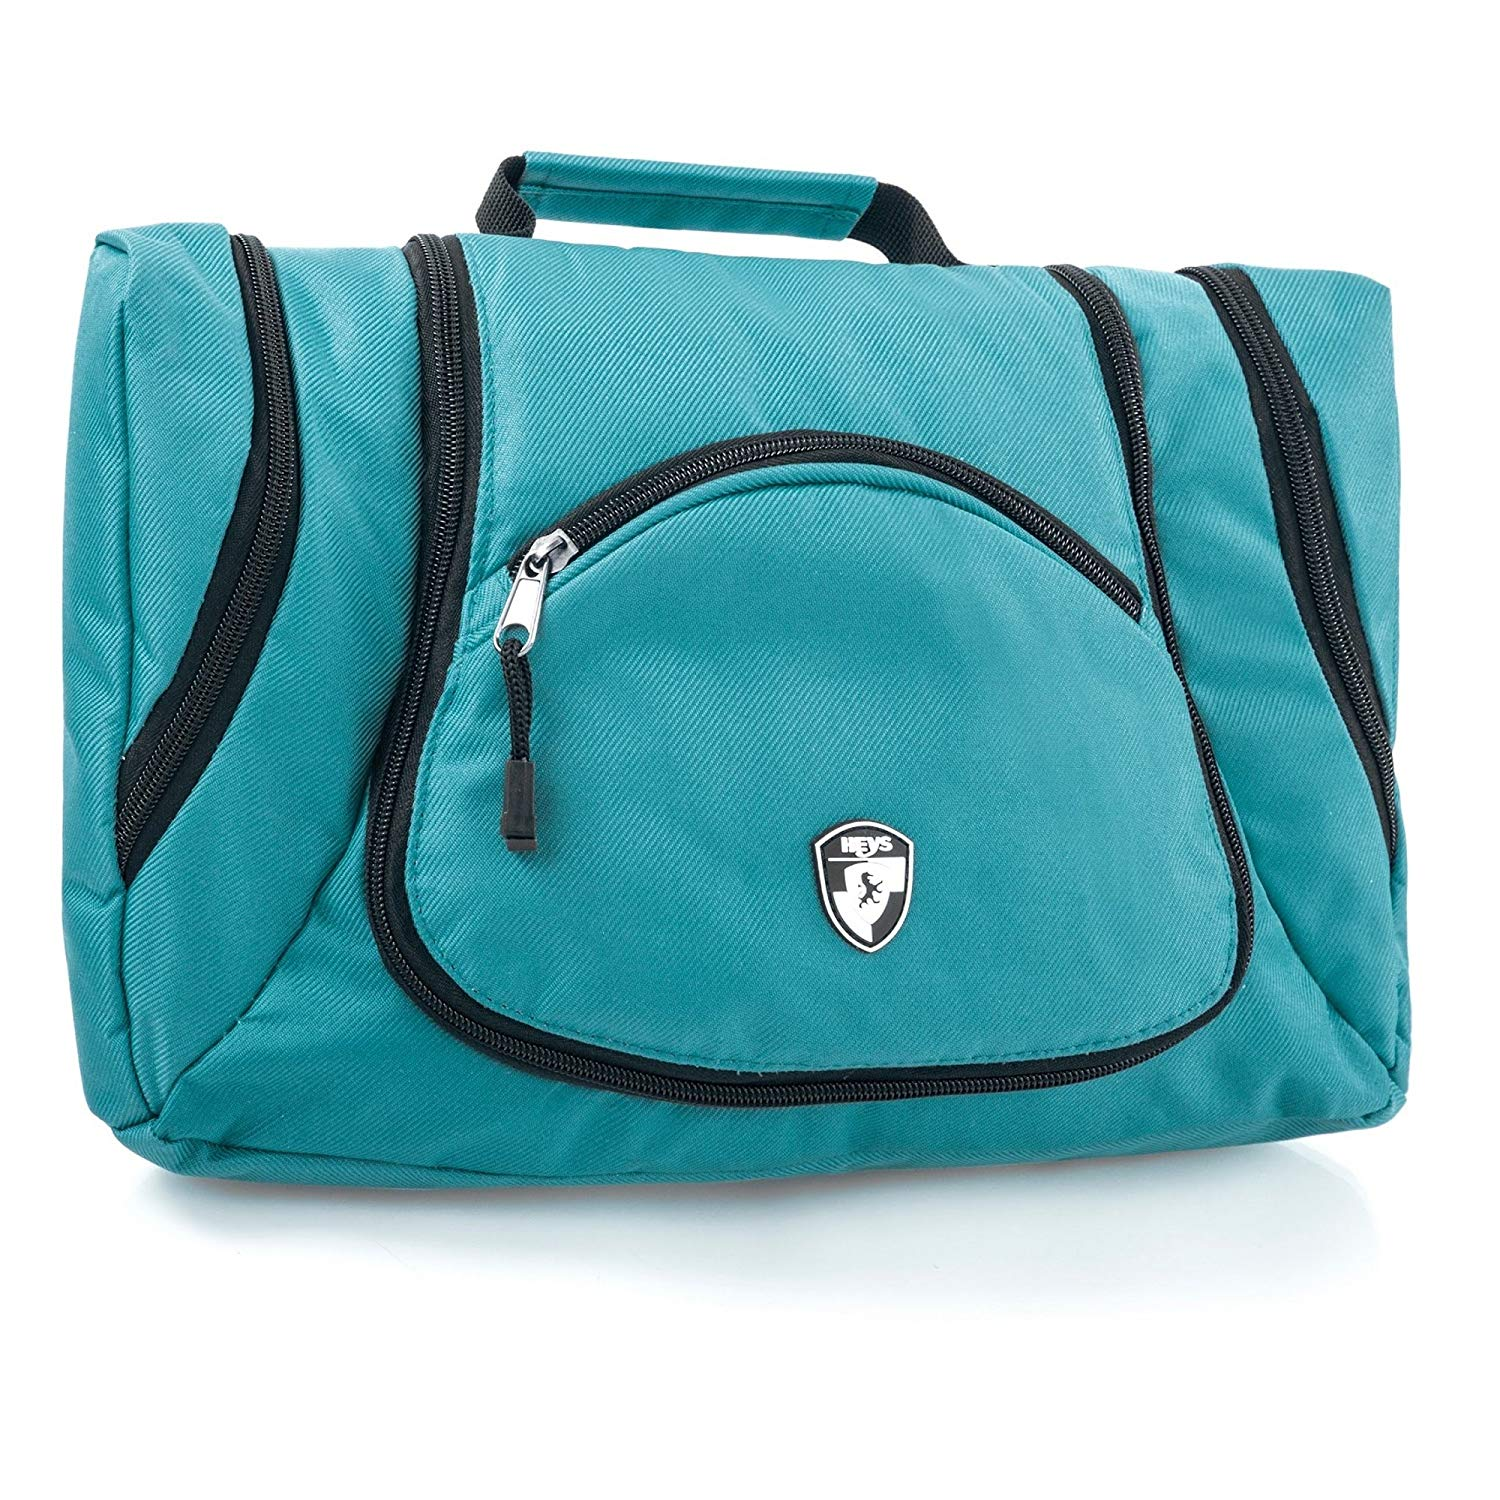 Toiletry Bag - Our favourite travel accessories